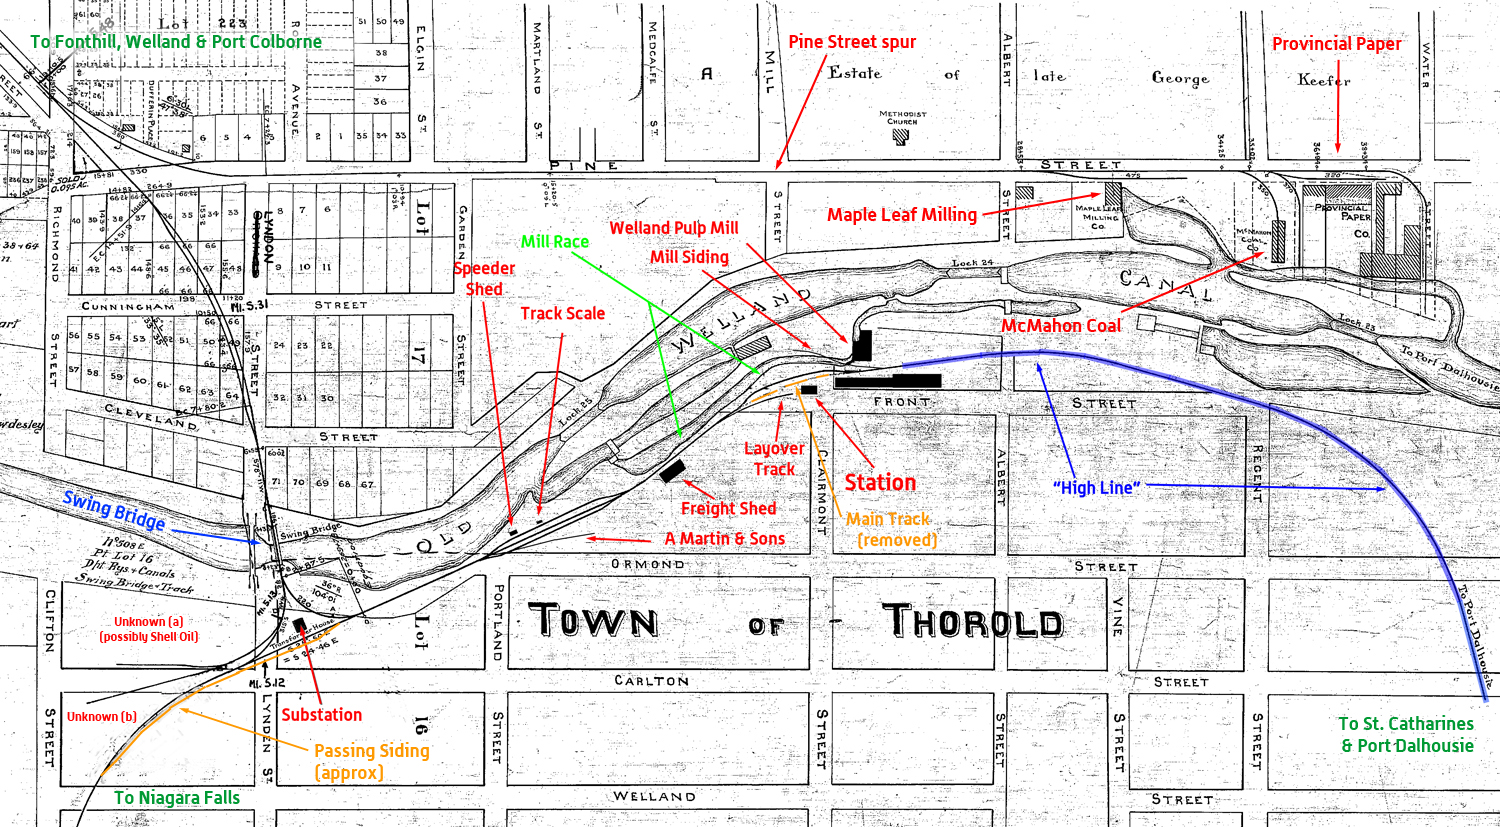 NS&T - Thorold Map - Labelled